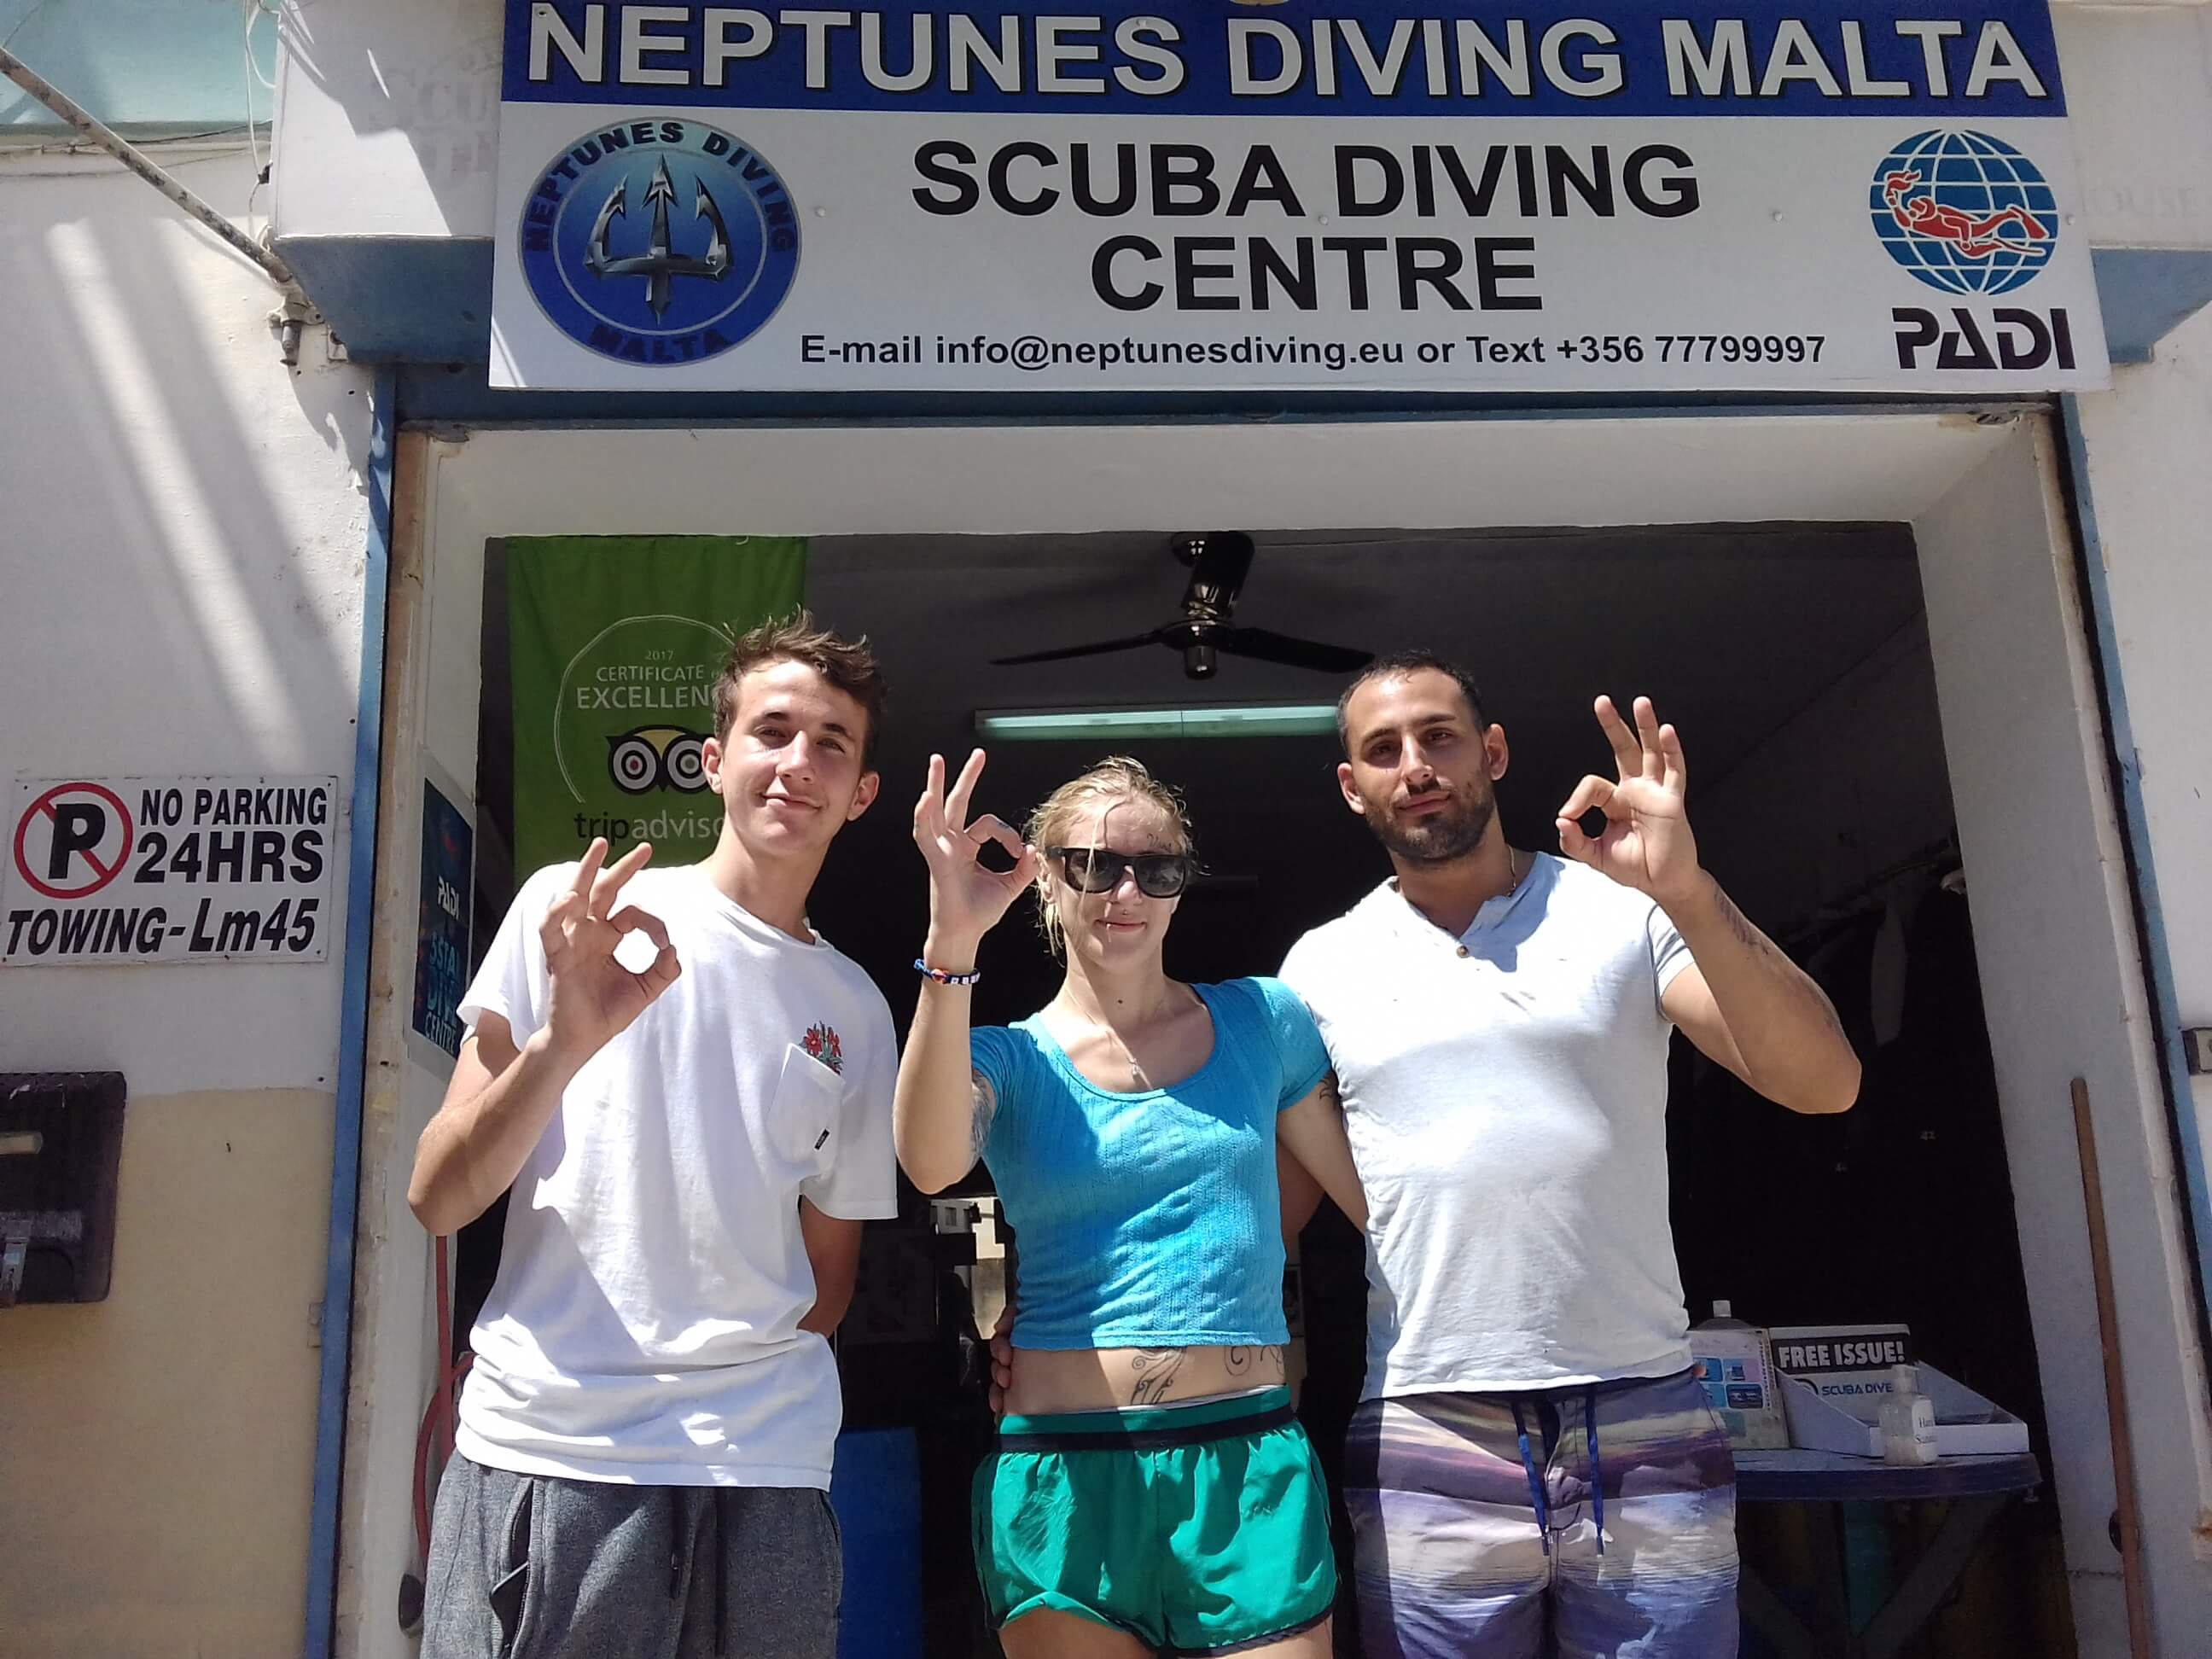 Discover Scuba Diving here at Neptunes Diving Malta